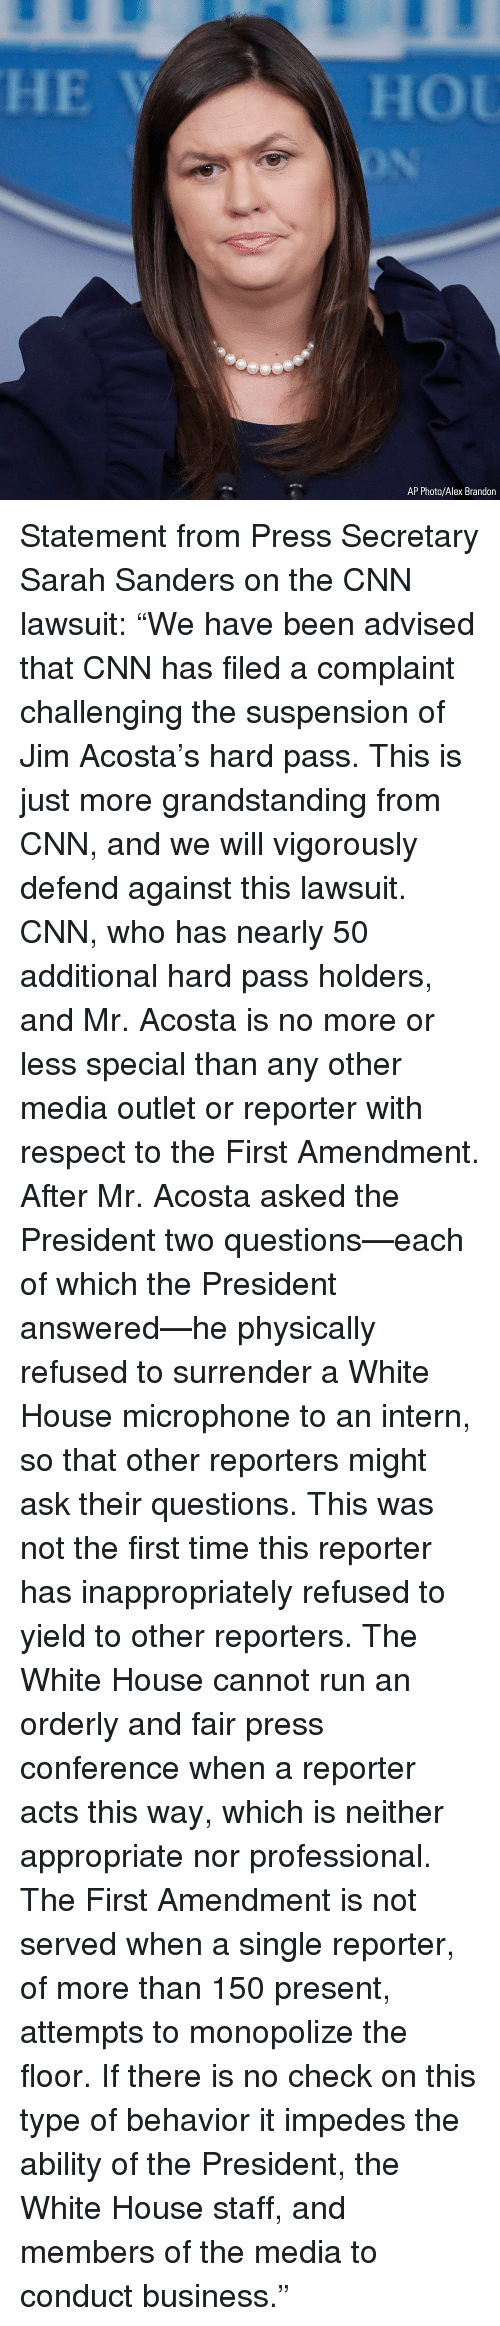 "reporters: AP Photo/Alex Brandon Statement from Press Secretary Sarah Sanders on the CNN lawsuit: ""We have been advised that CNN has filed a complaint challenging the suspension of Jim Acosta's hard pass. This is just more grandstanding from CNN, and we will vigorously defend against this lawsuit. CNN, who has nearly 50 additional hard pass holders, and Mr. Acosta is no more or less special than any other media outlet or reporter with respect to the First Amendment. After Mr. Acosta asked the President two questions—each of which the President answered—he physically refused to surrender a White House microphone to an intern, so that other reporters might ask their questions. This was not the first time this reporter has inappropriately refused to yield to other reporters. The White House cannot run an orderly and fair press conference when a reporter acts this way, which is neither appropriate nor professional. The First Amendment is not served when a single reporter, of more than 150 present, attempts to monopolize the floor. If there is no check on this type of behavior it impedes the ability of the President, the White House staff, and members of the media to conduct business."""